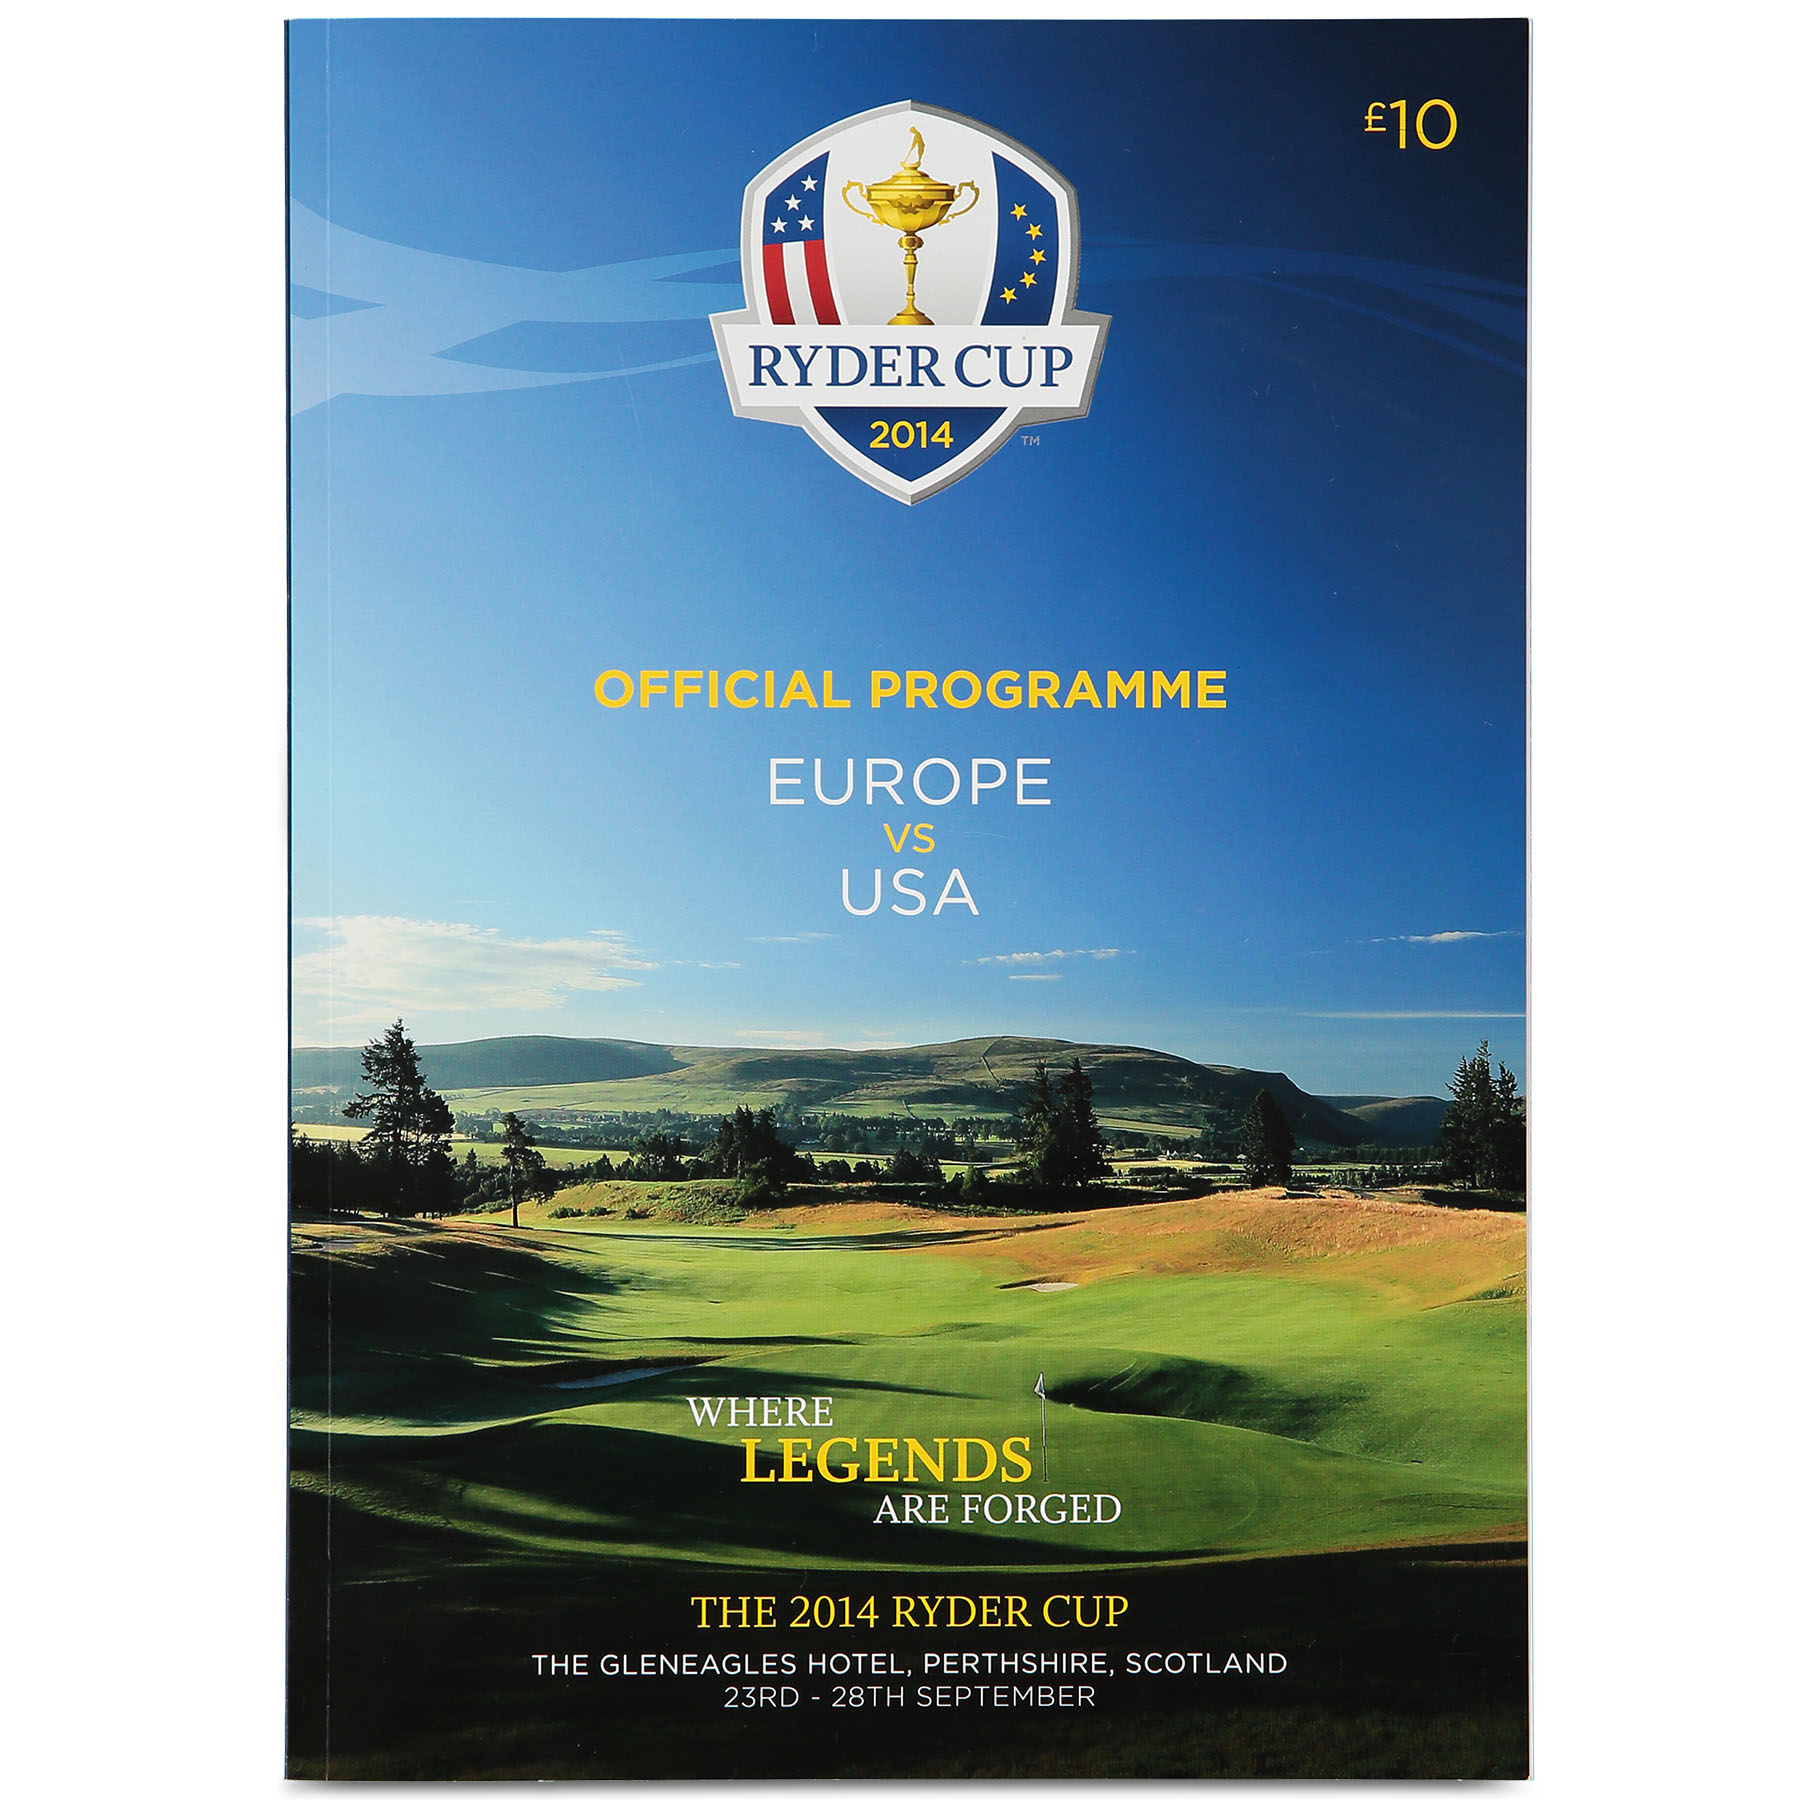 The 2014 Ryder Cup Official Programme